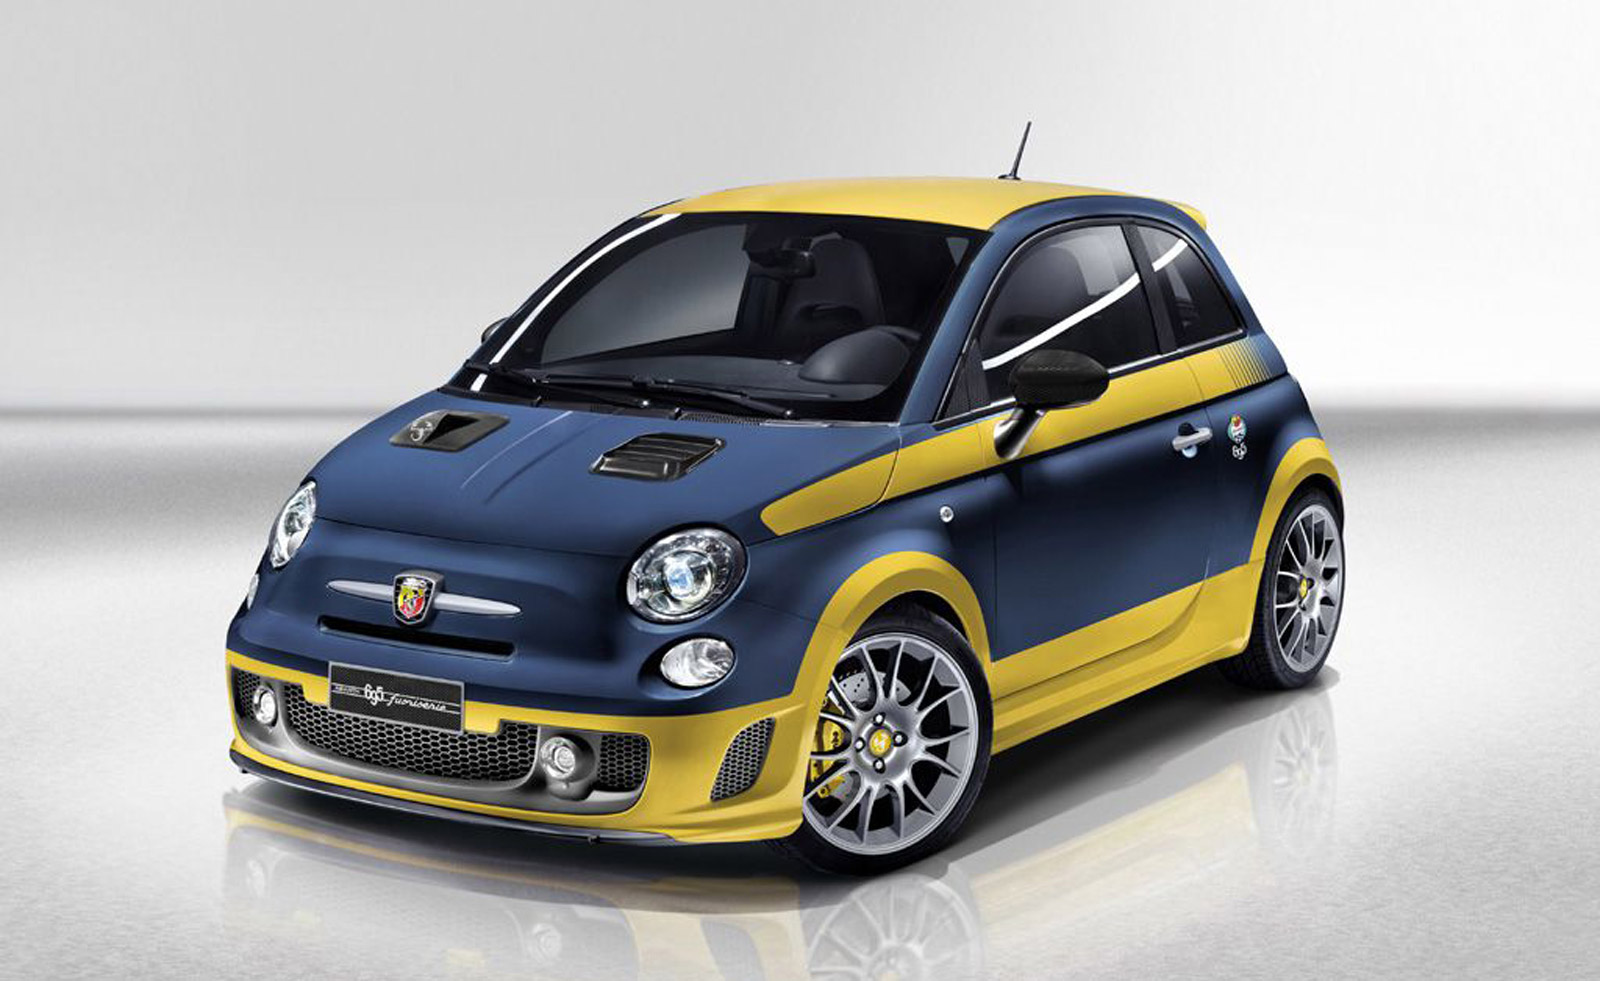 Abarth Previews Fuori Serie Personalization Service With